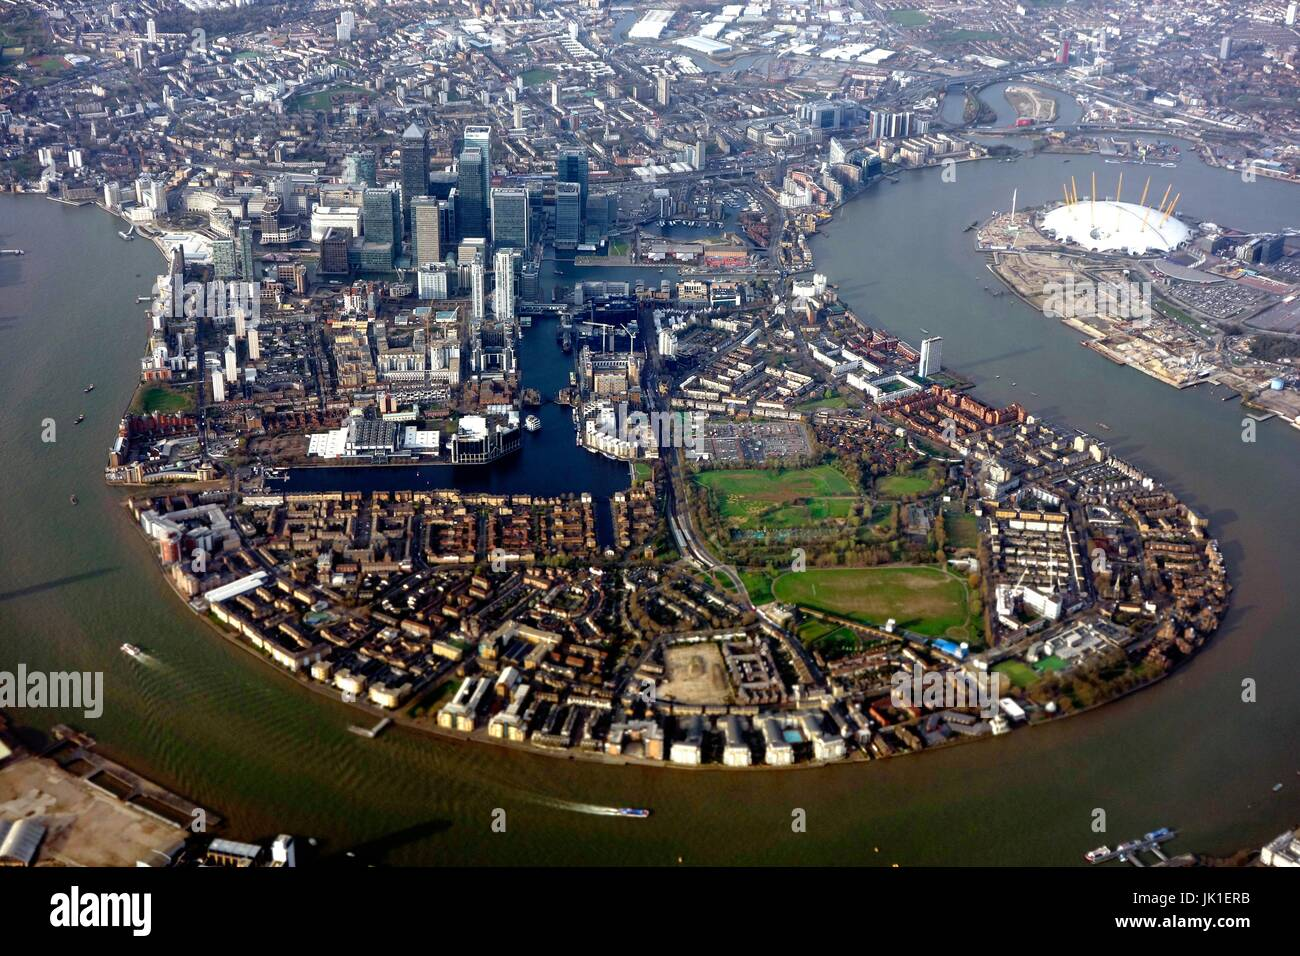 Central London from the air - Stock Image